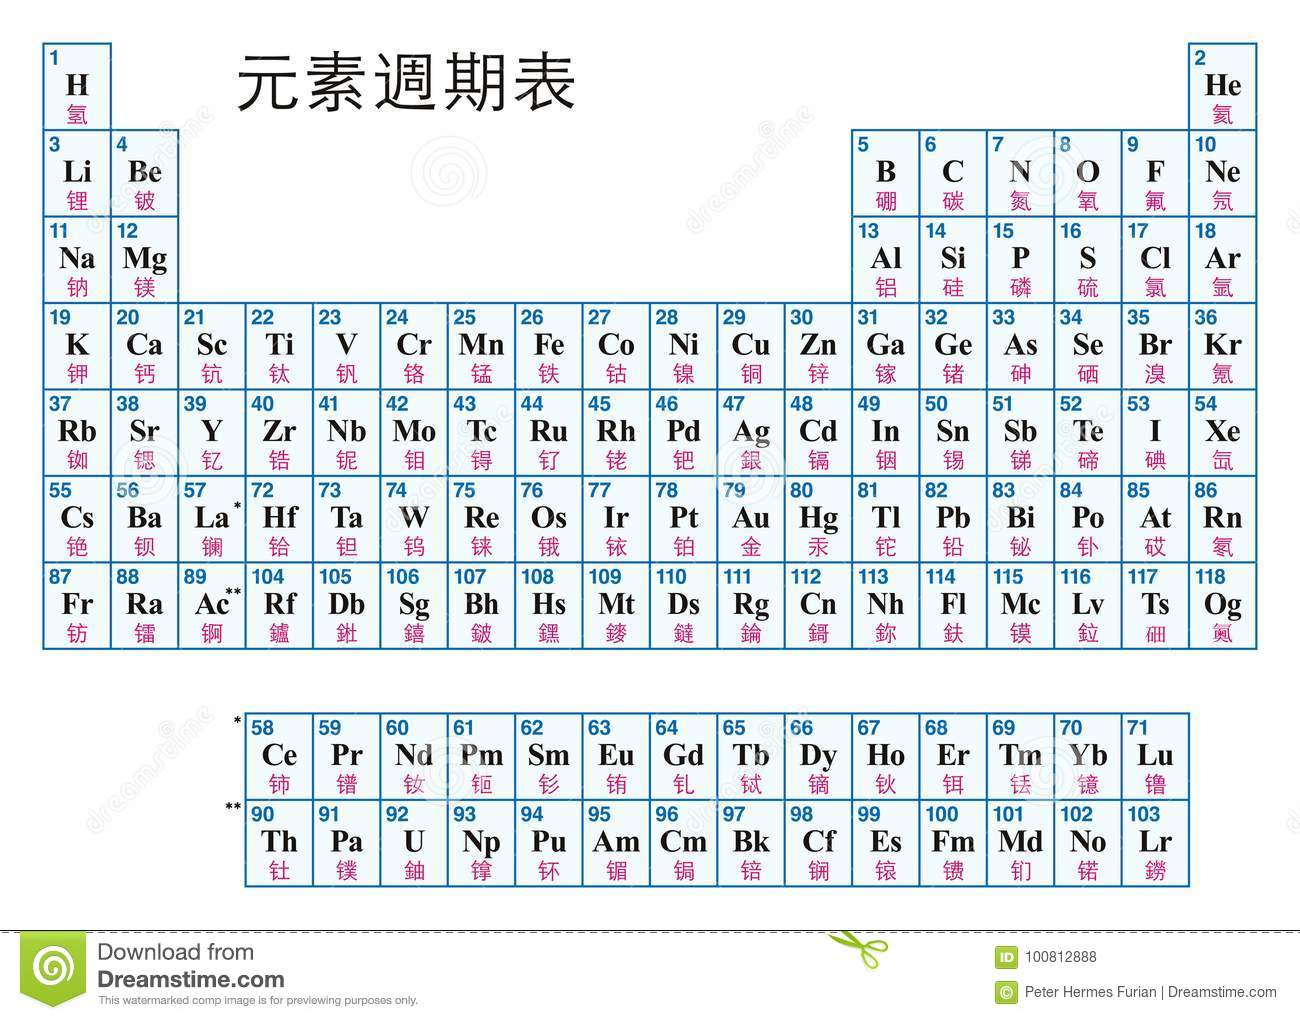 Periodic table of the elements chinese stock vector illustration periodic table of the elements chinese biocorpaavc Choice Image